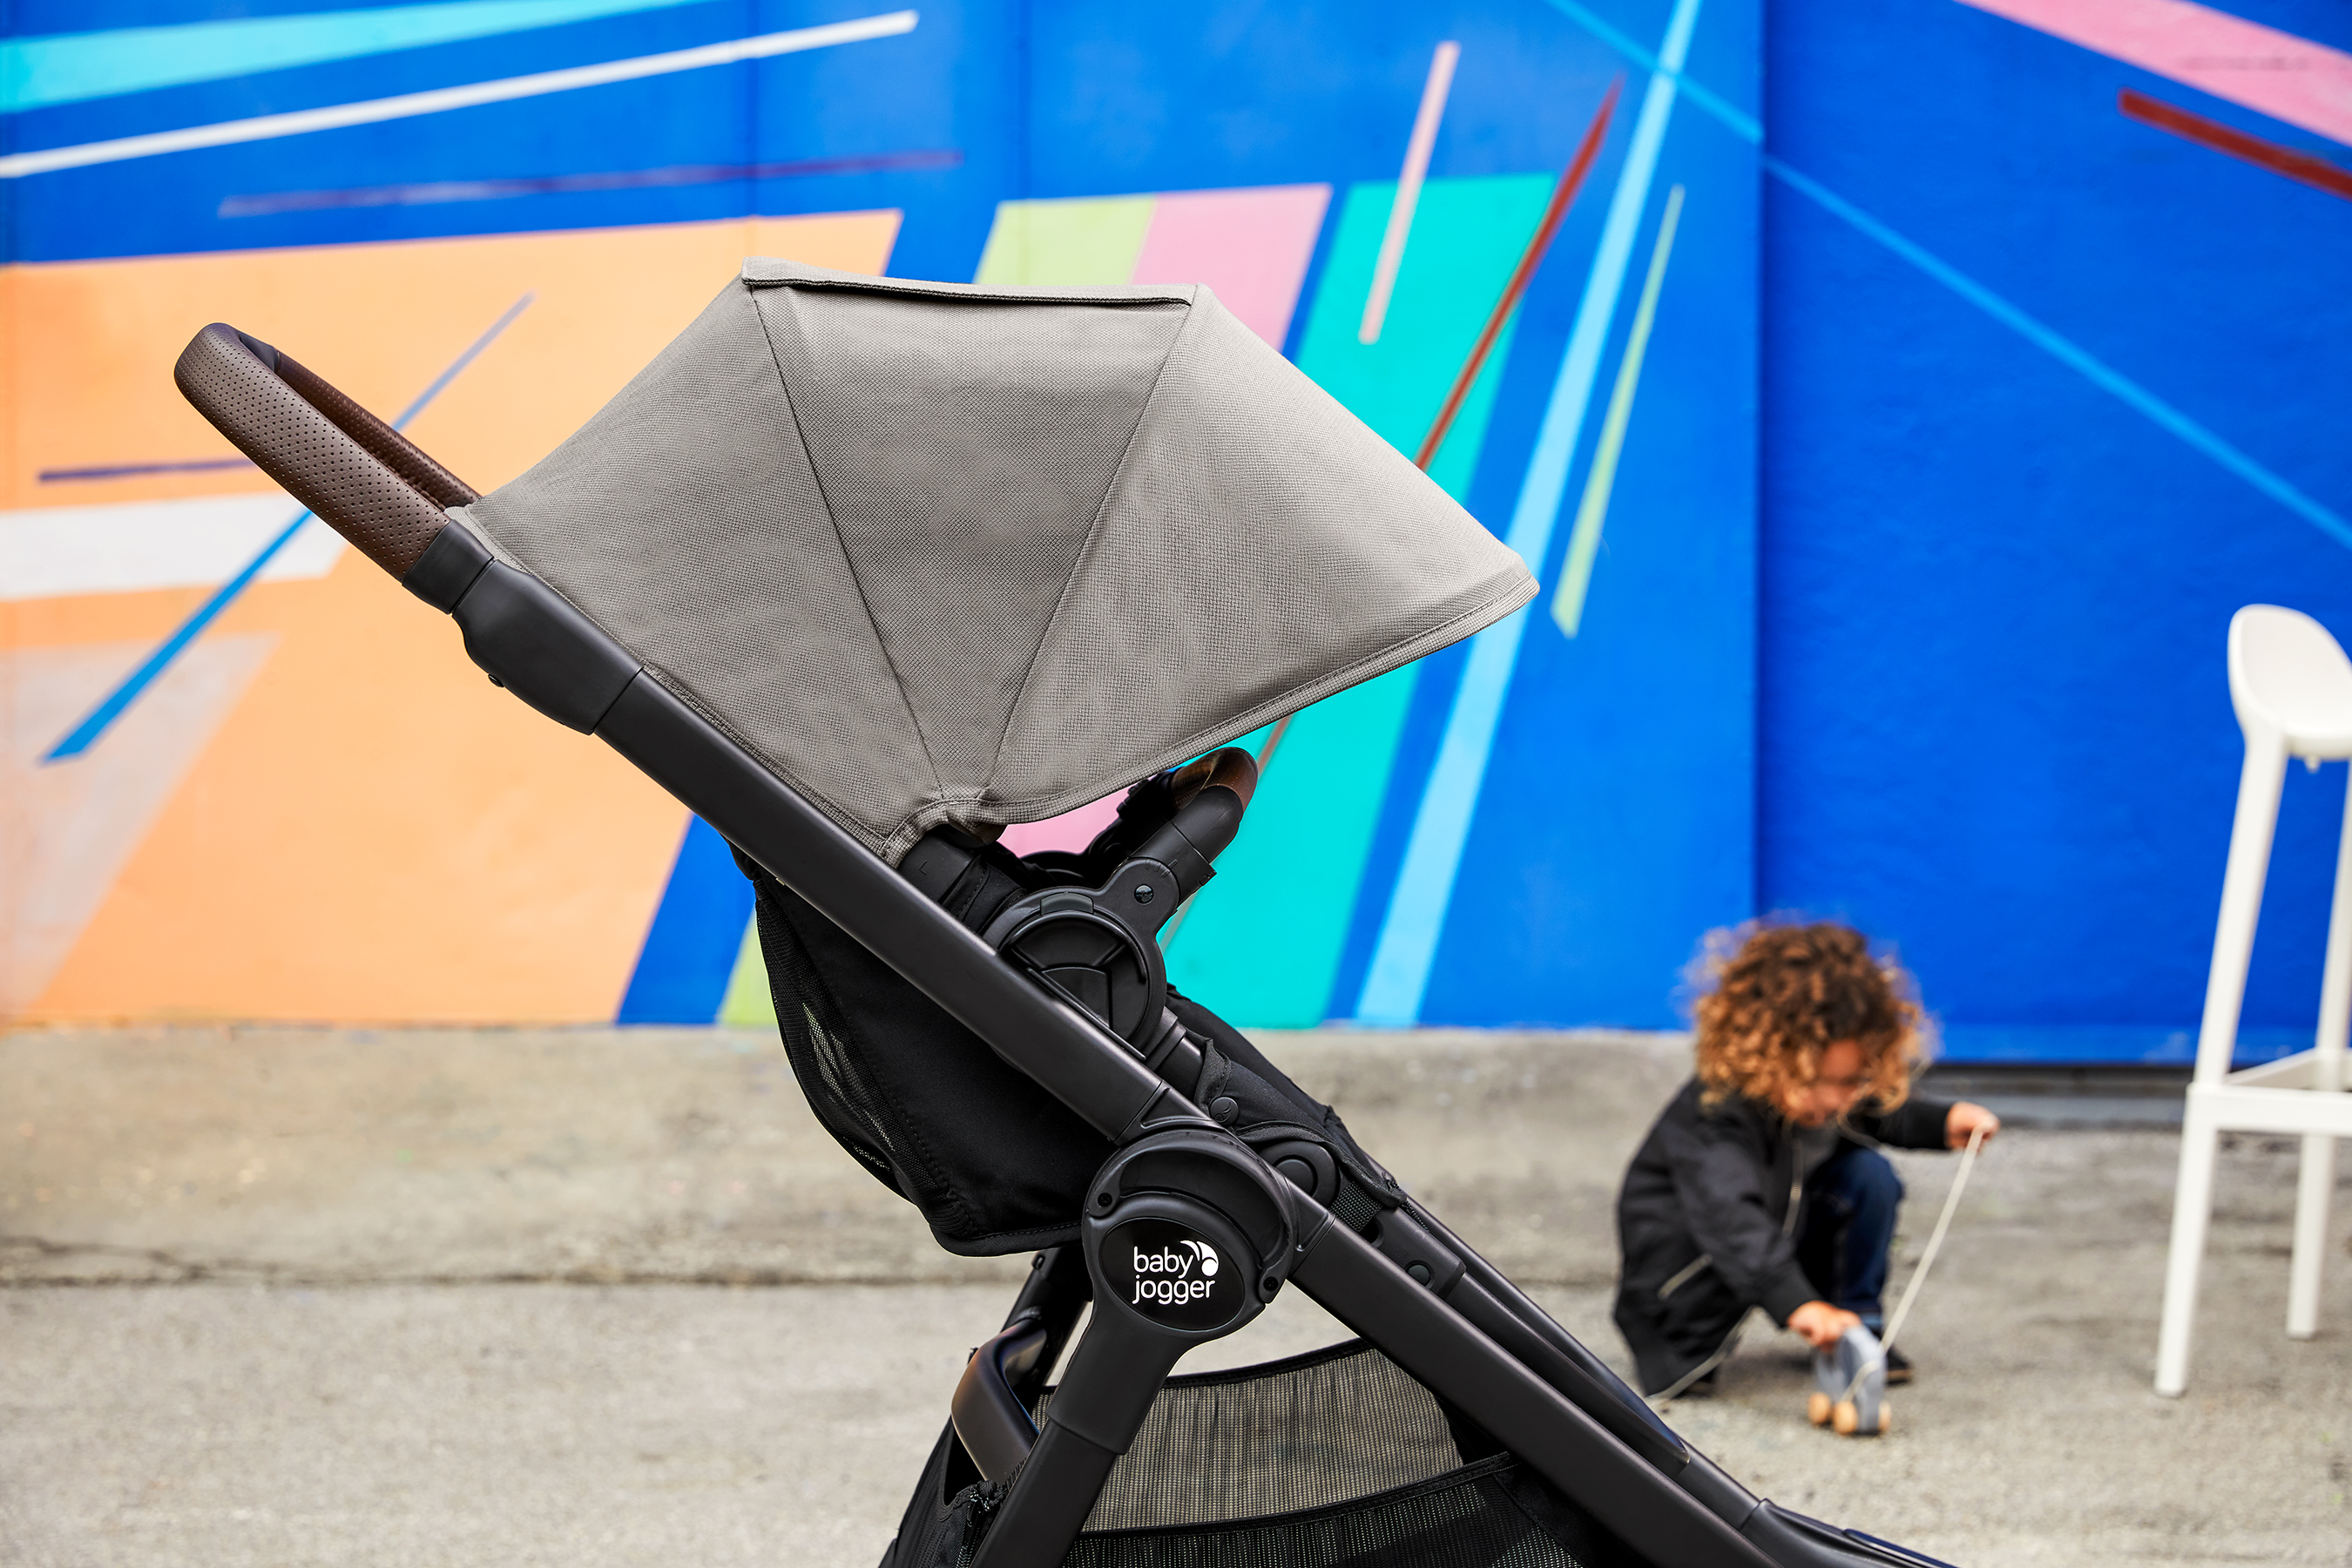 Baby Jogger® strollers conquer curbs and stairs, fold small for travel, and are built strong to let you wander off the beaten path and enjoy your journey together.